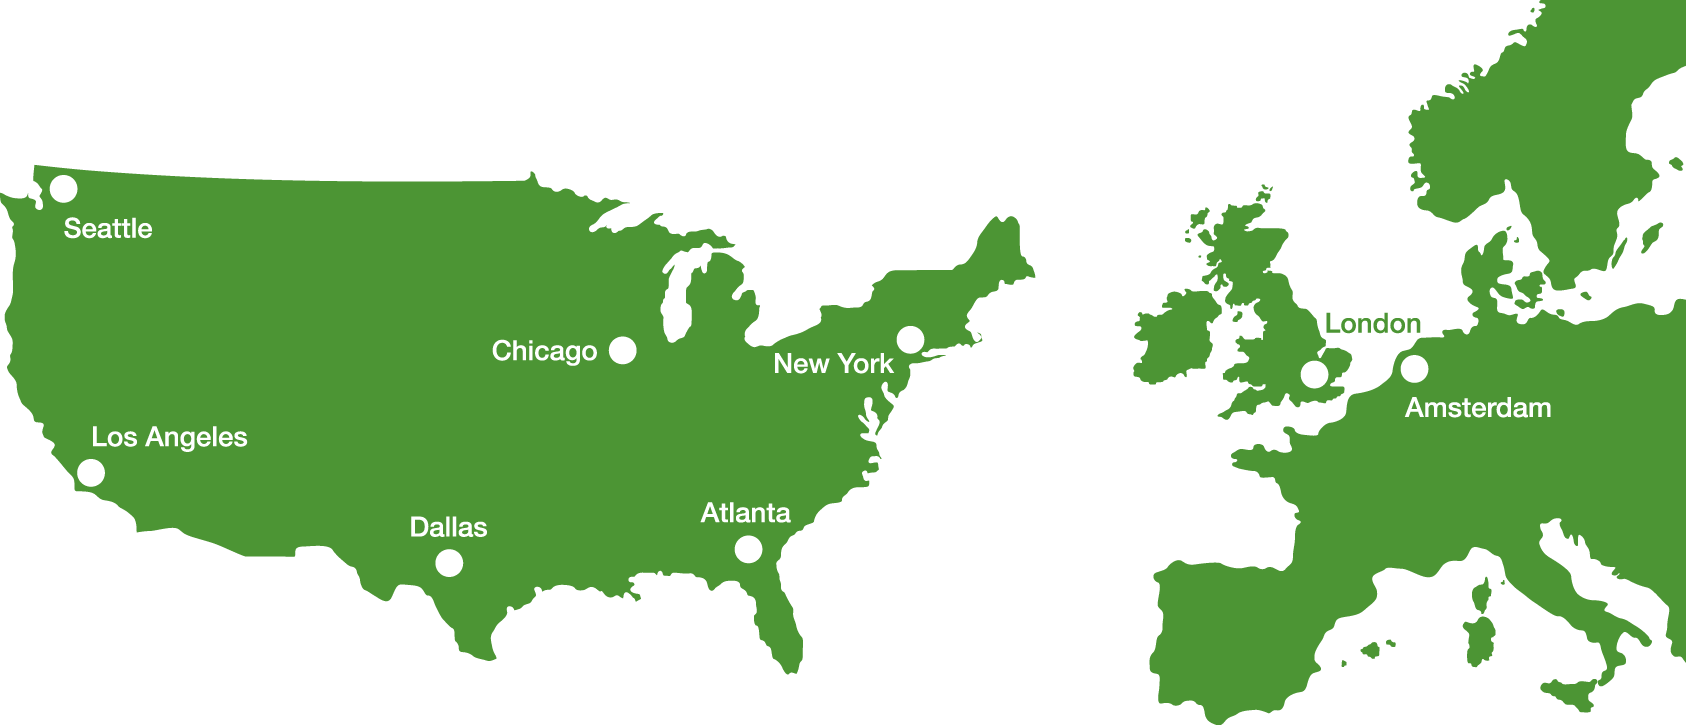 Sharedbands global offices and data centres